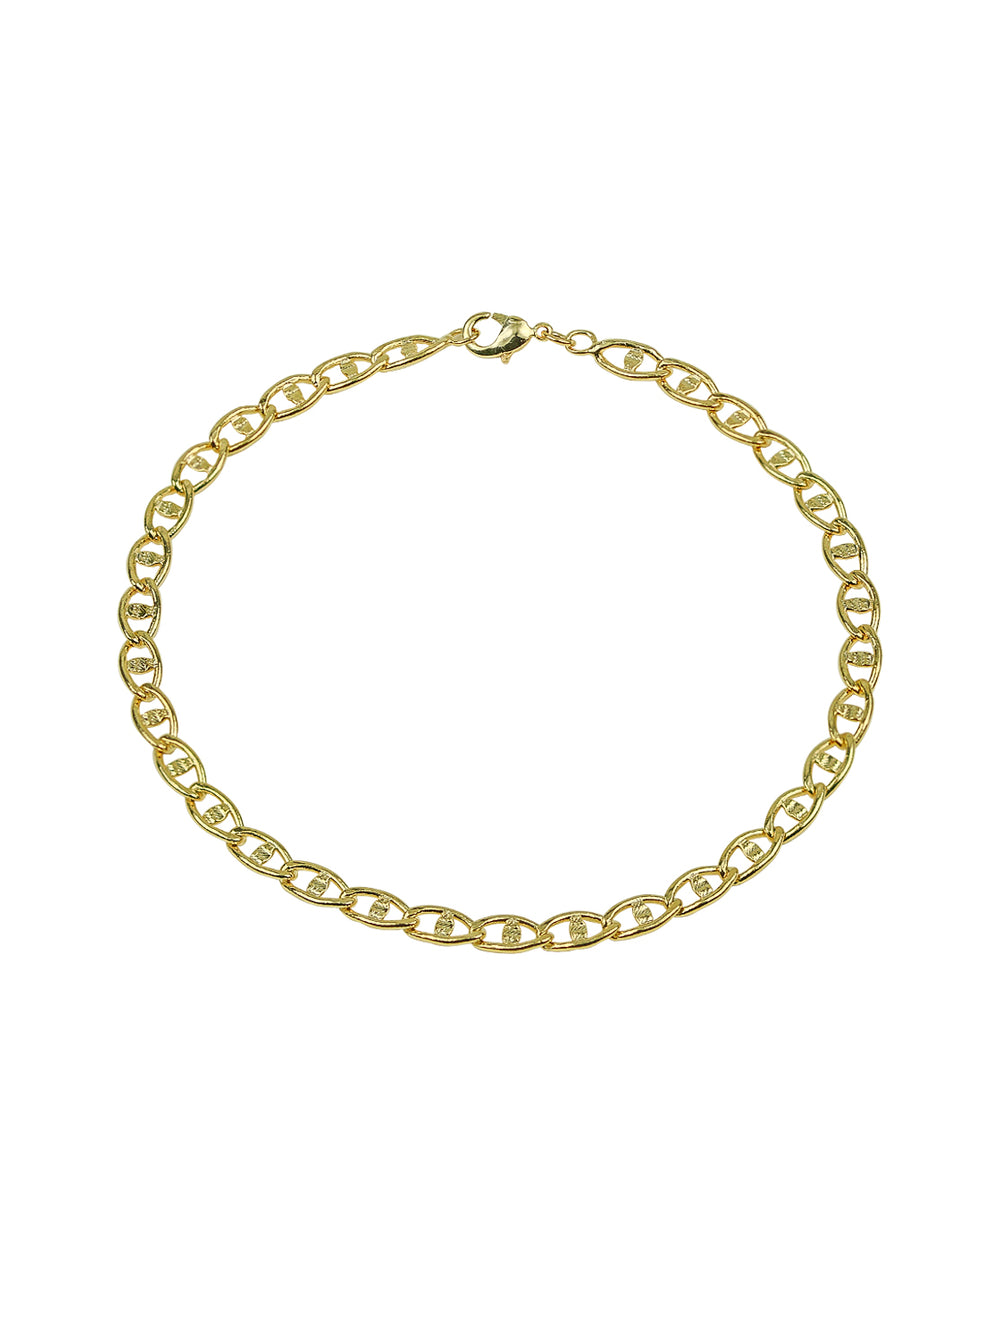 THE KIARI ANKLET